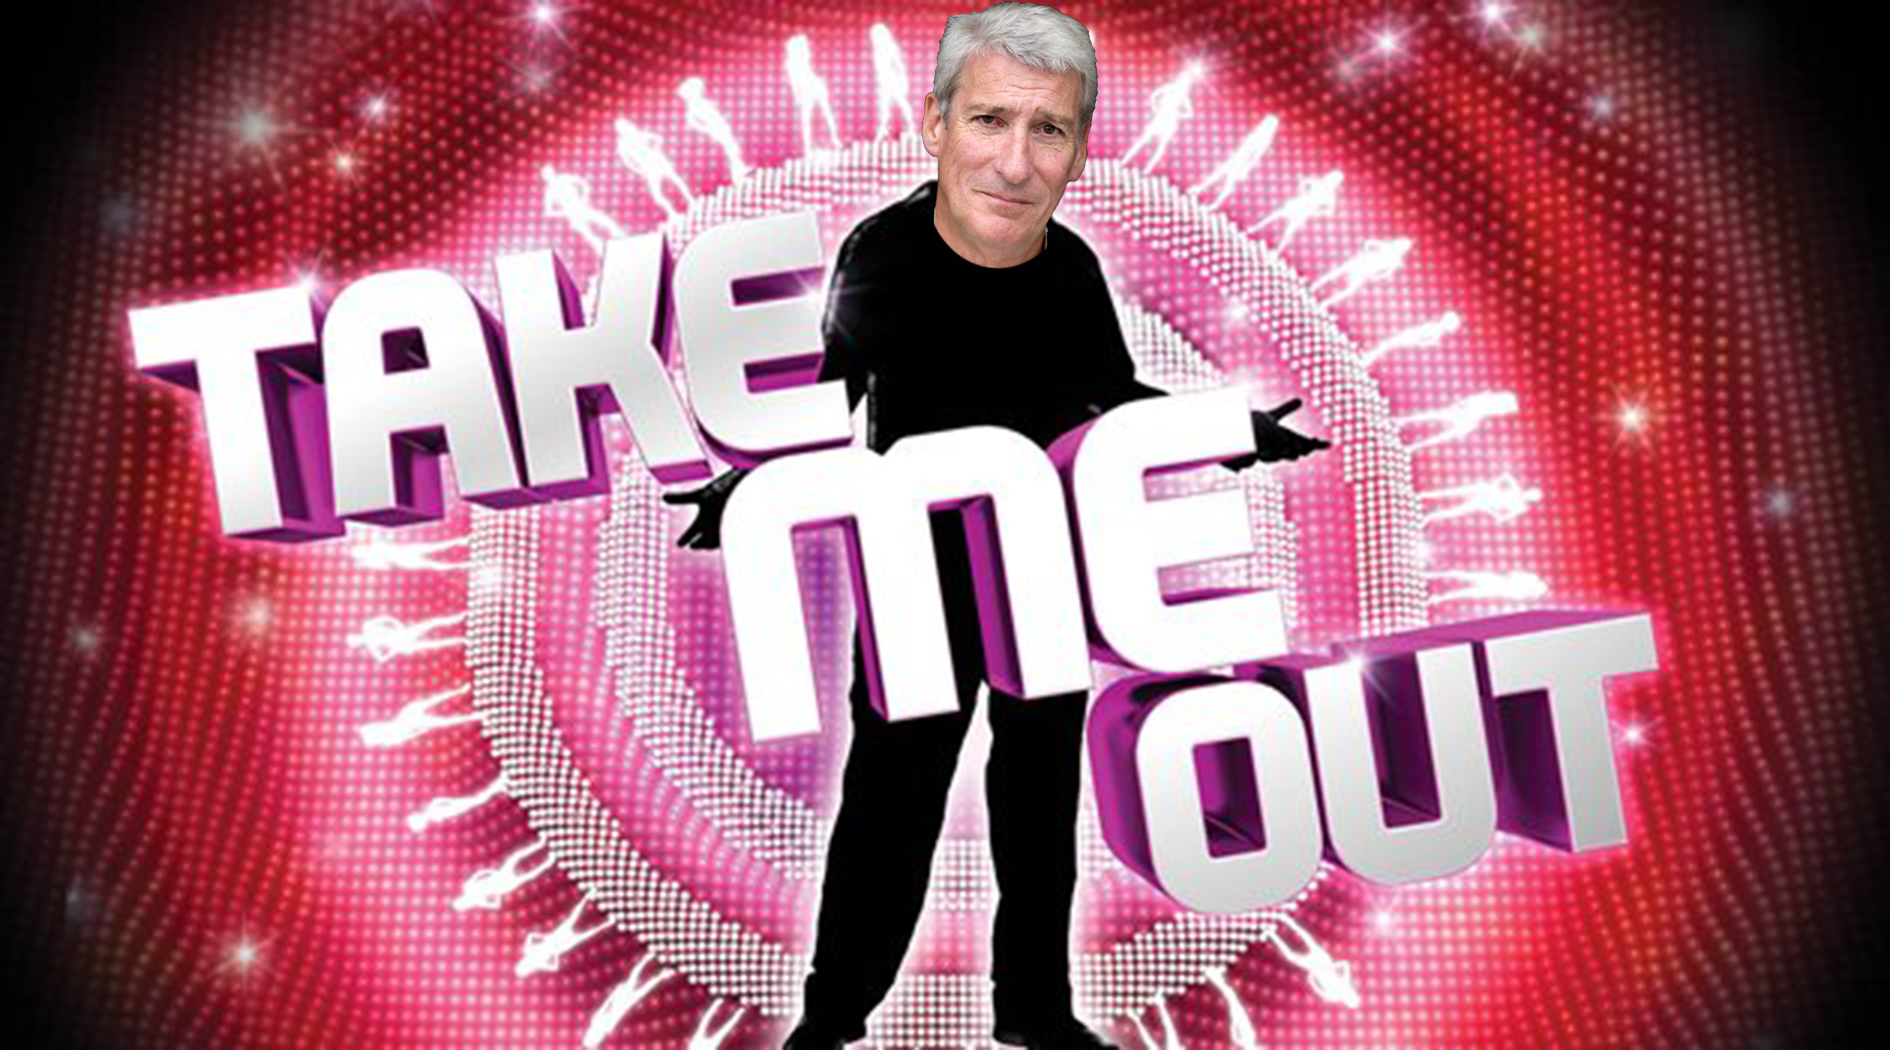 Former Newsnight host Jeremy Paxman likes The Only Way Is Essex, but not as much as Take Me Out